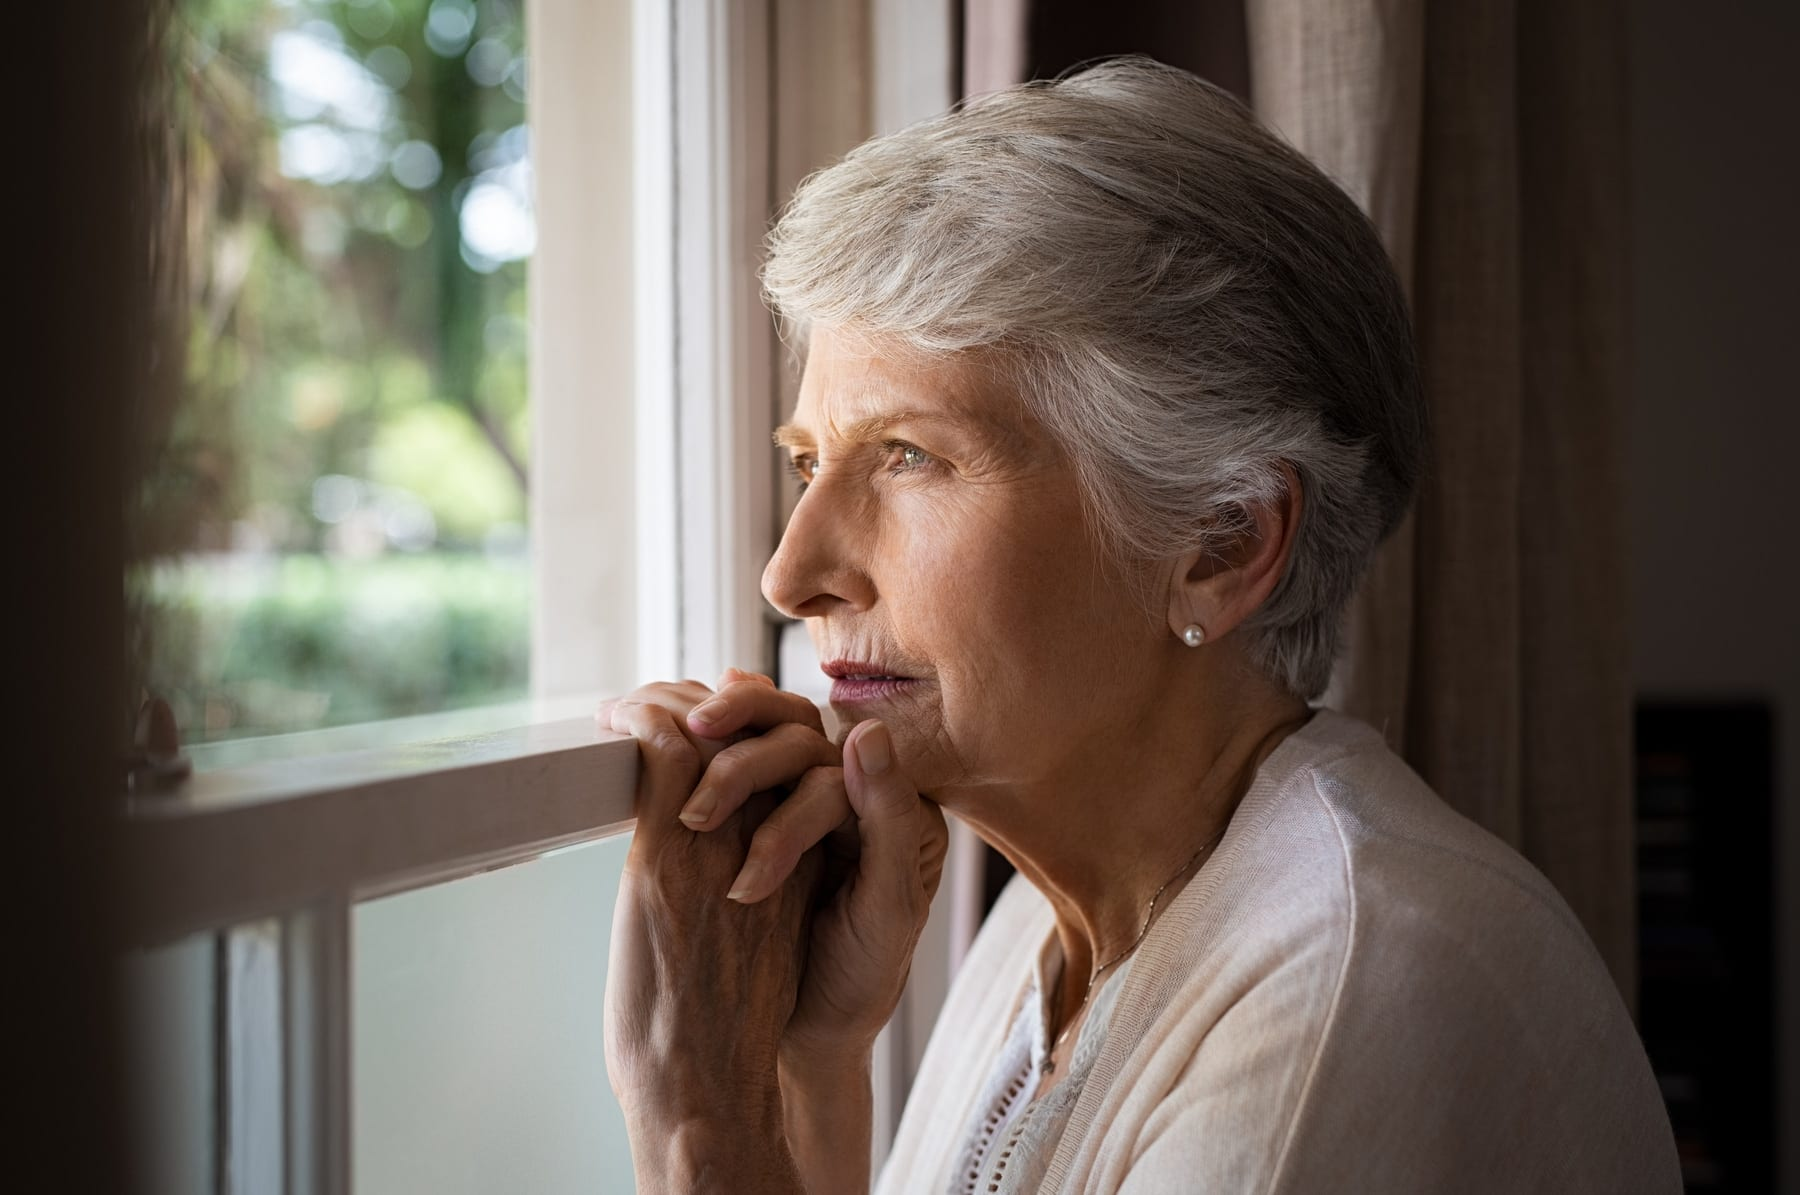 Older woman looking sadly out a window